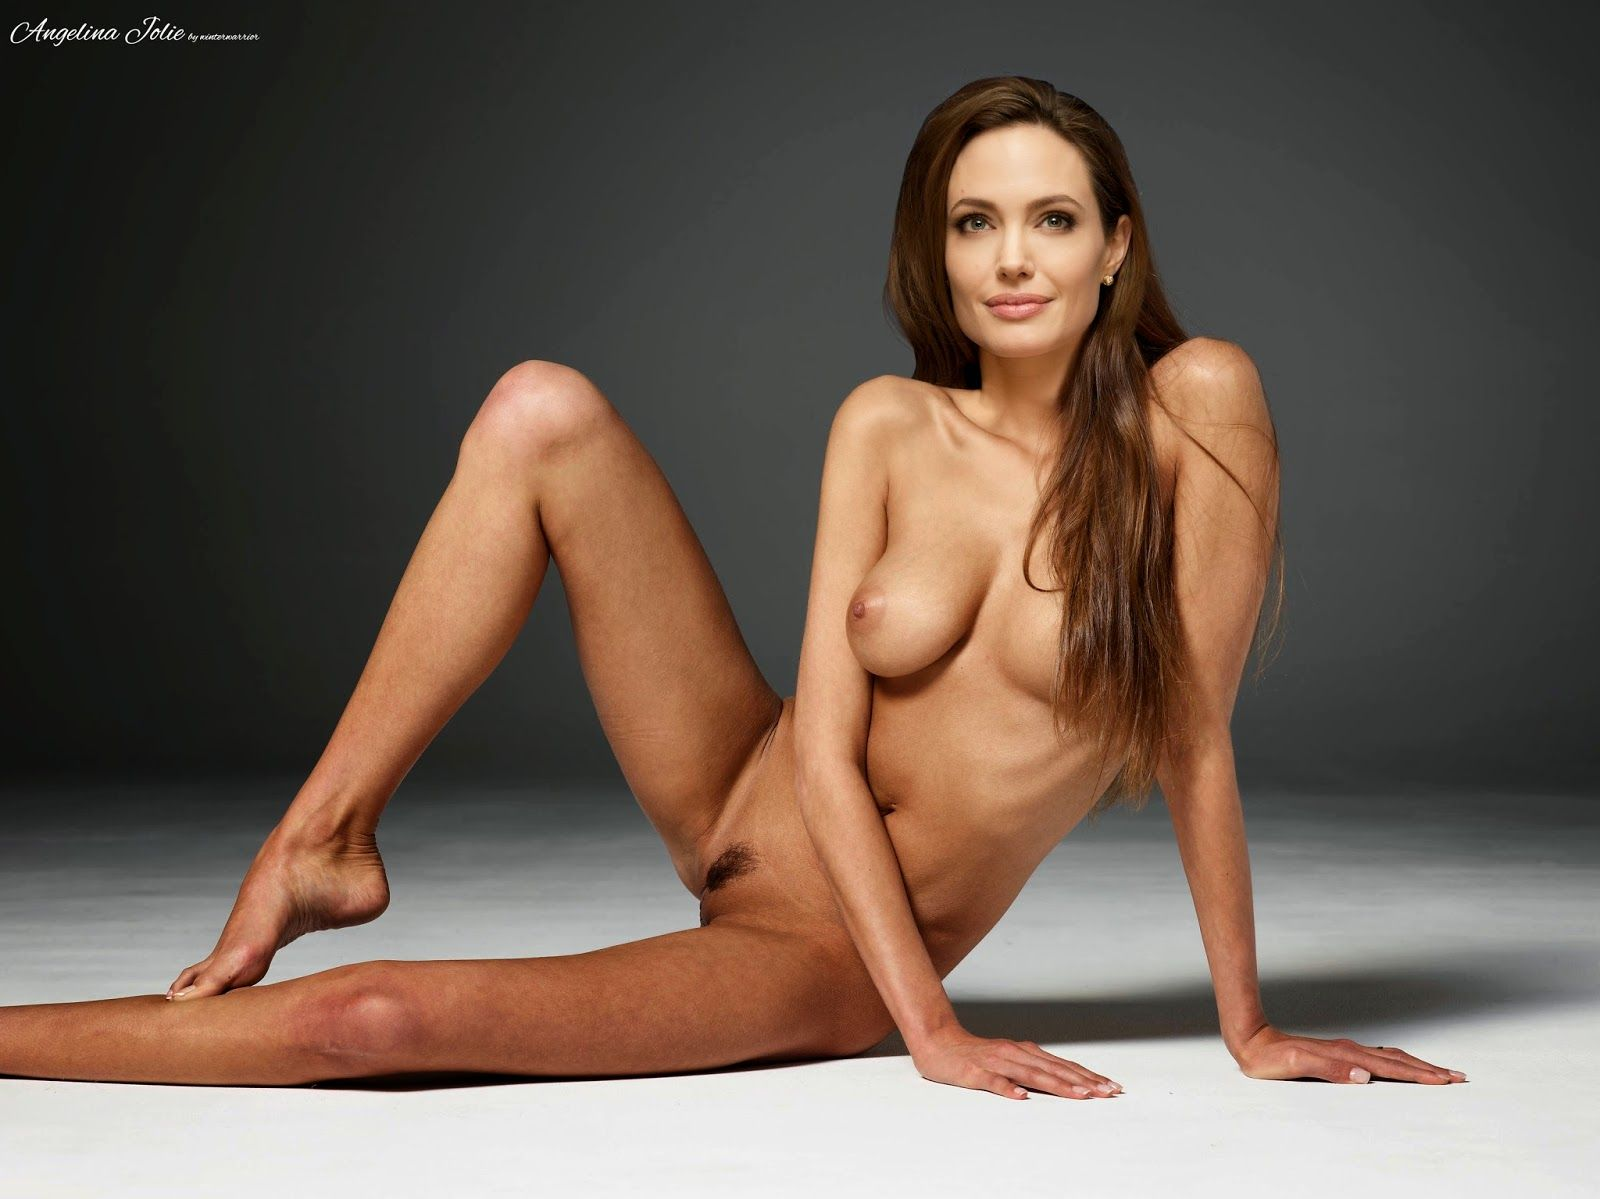 Angelina jolie young nude pussey pic 937